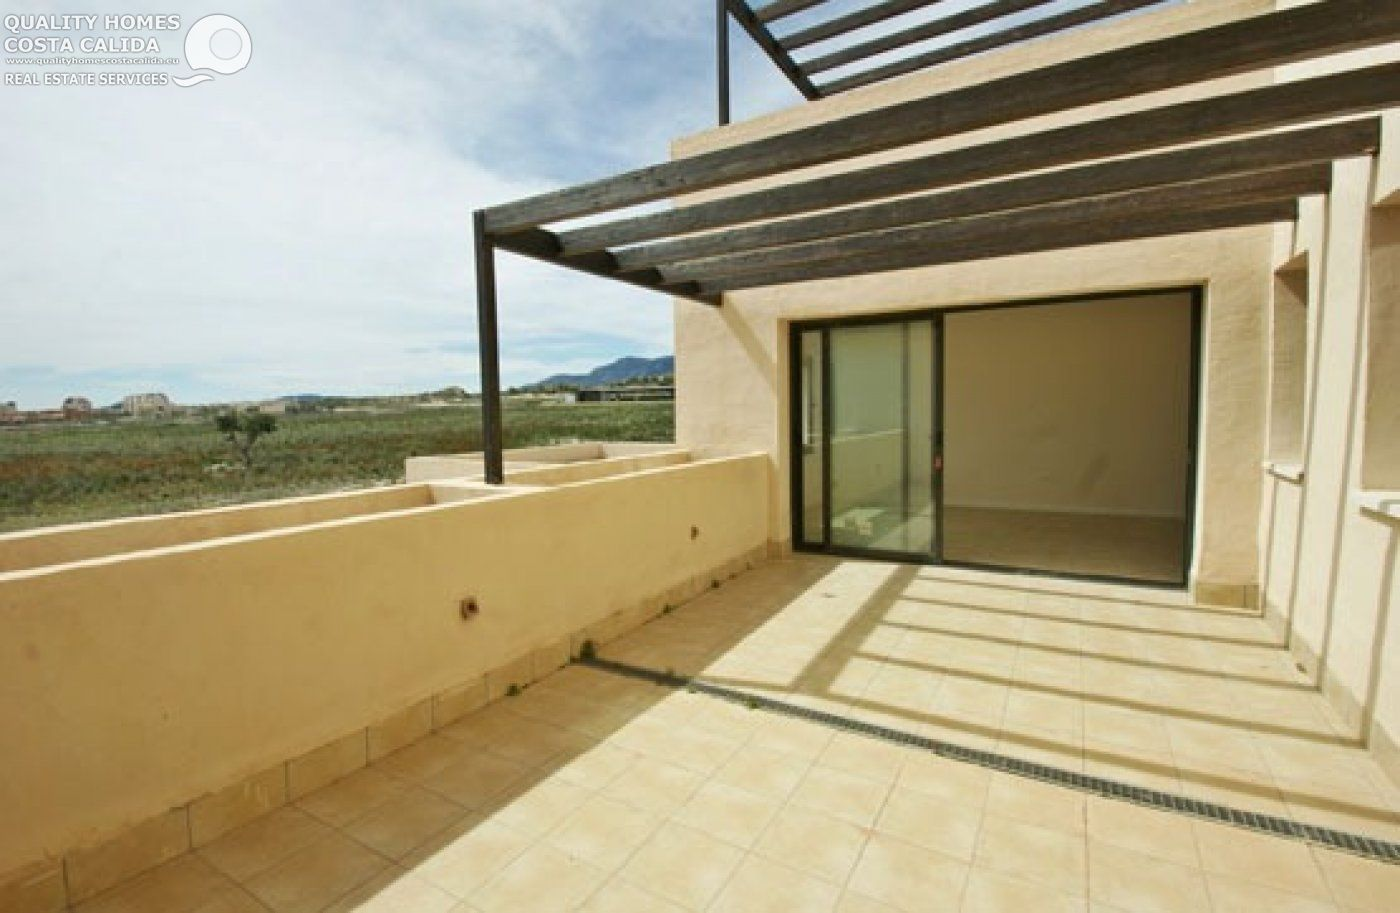 Gallery Image 15 of Maybe the best investment in the Murcia Region